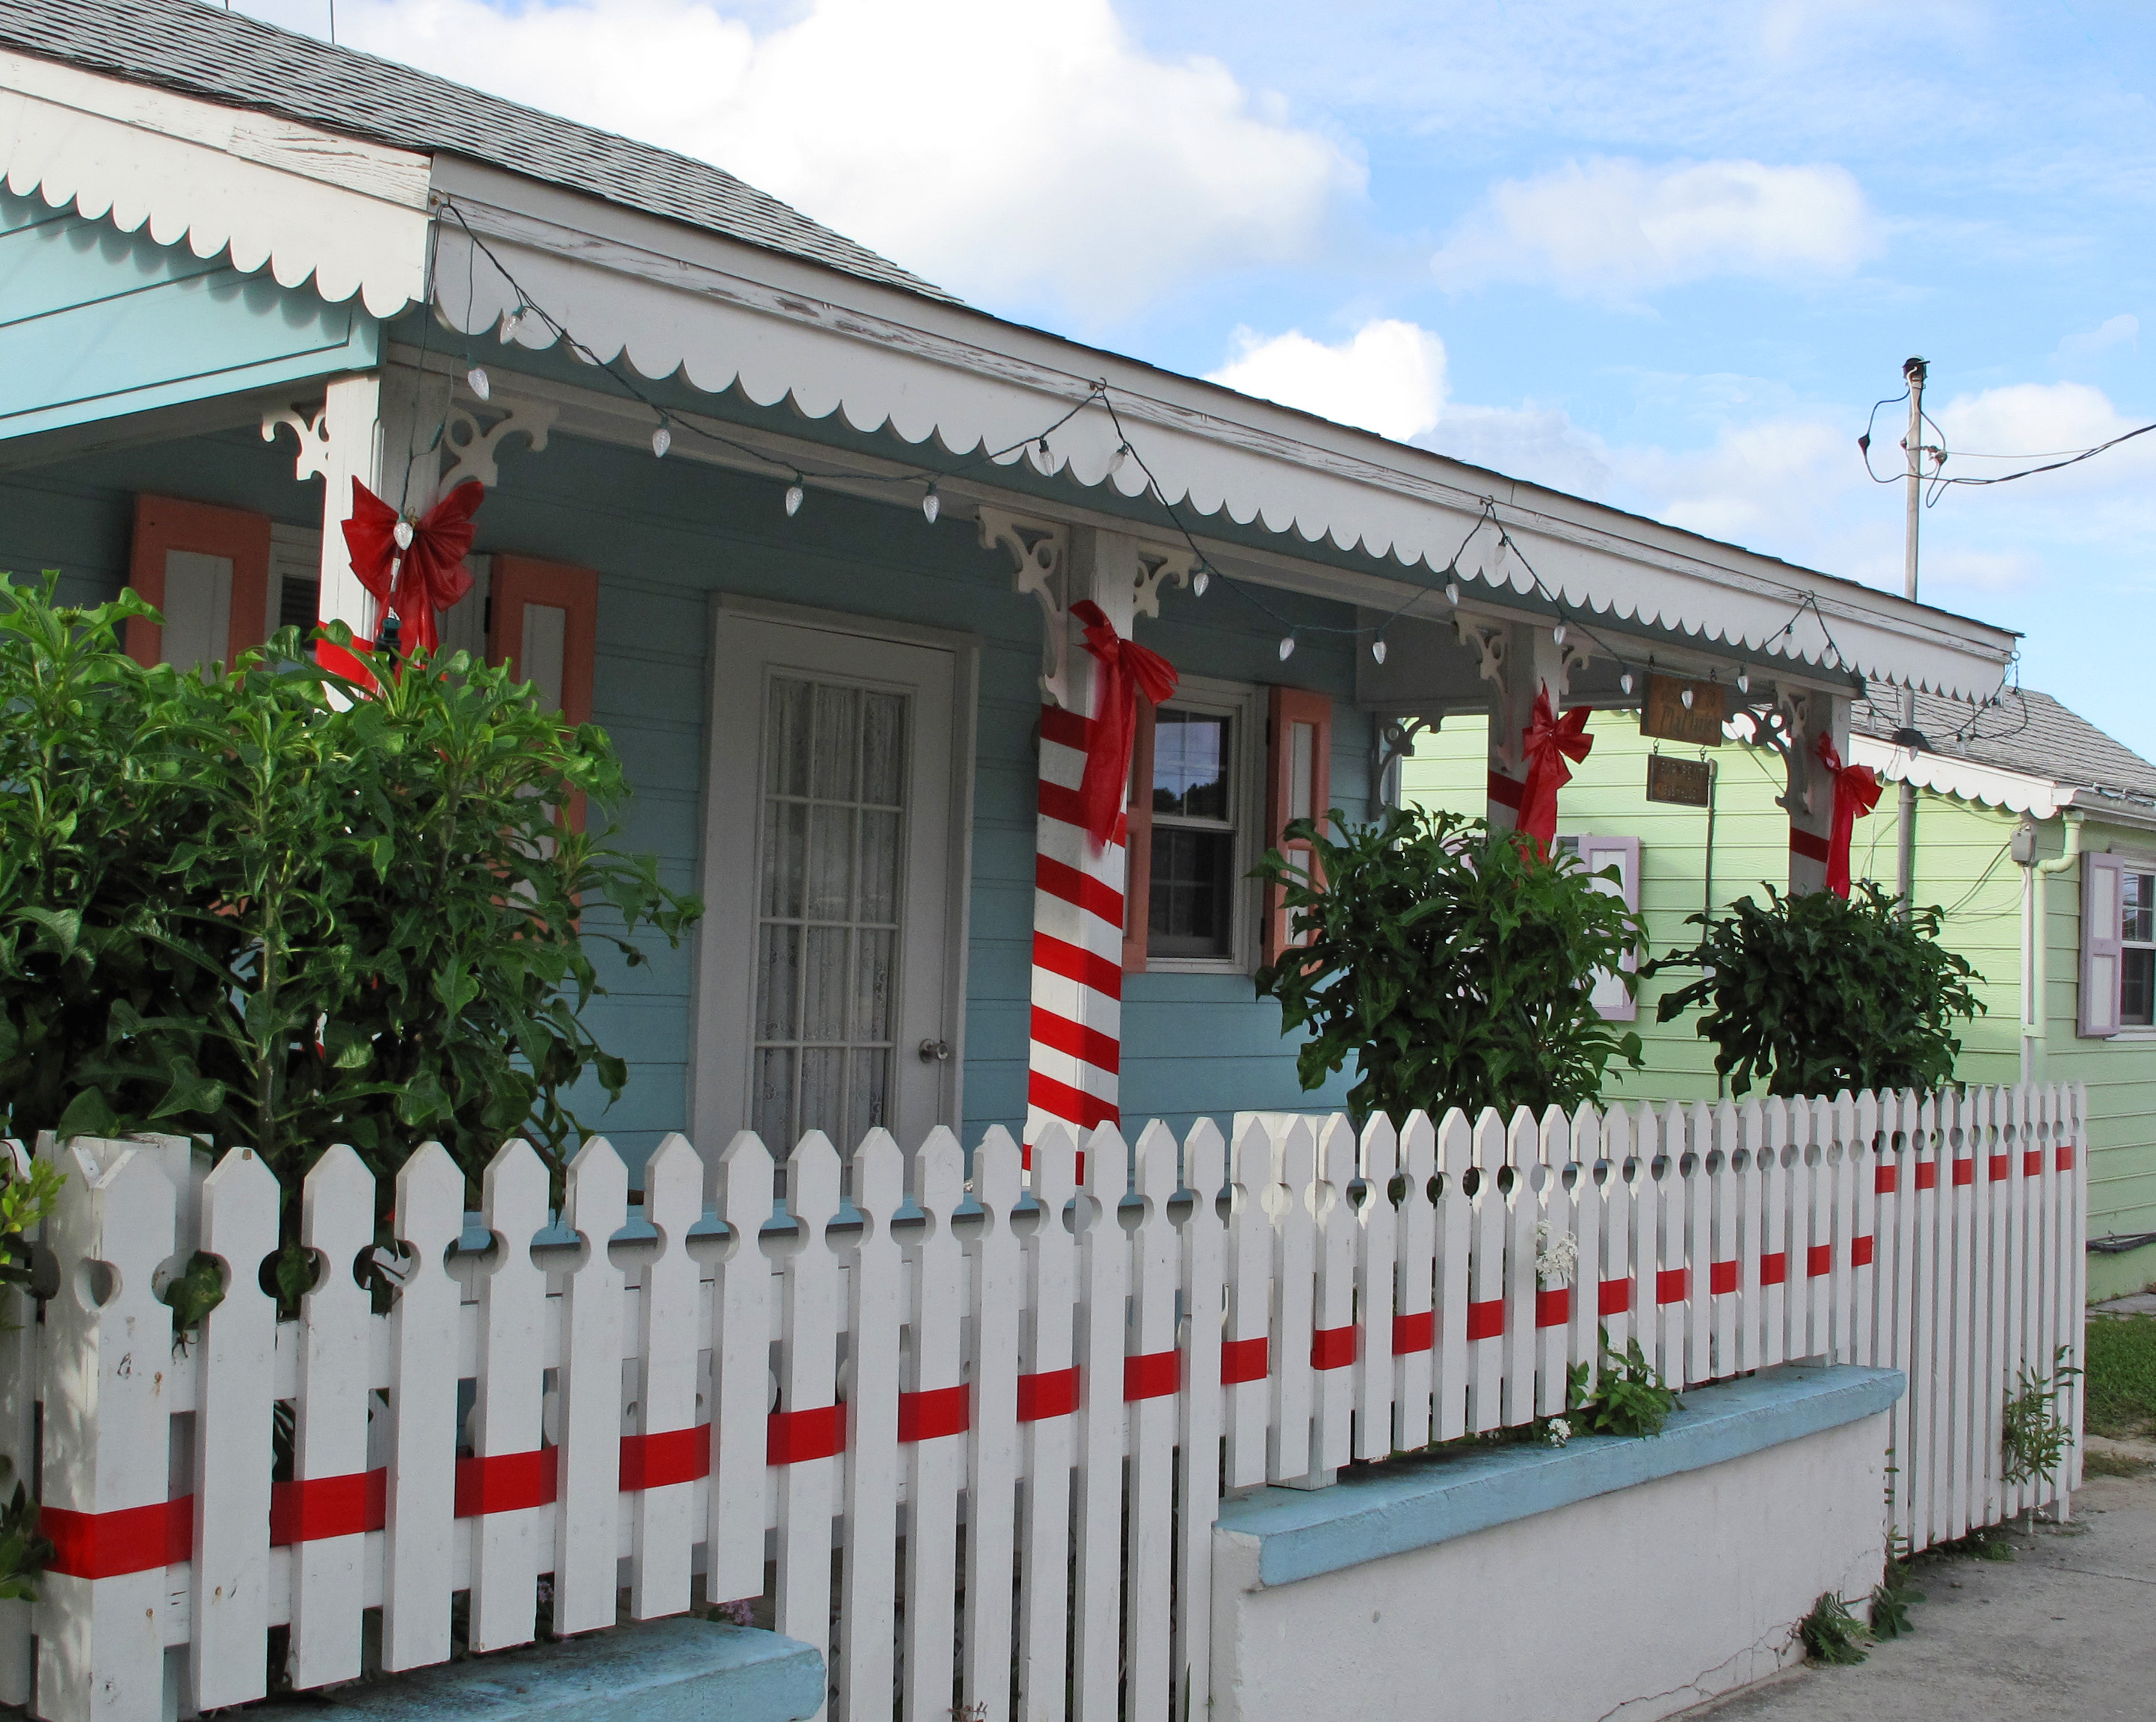 House rentals green turtle cay - New Plymouth S Ma Masie S Cottage Decorated For The Holidays